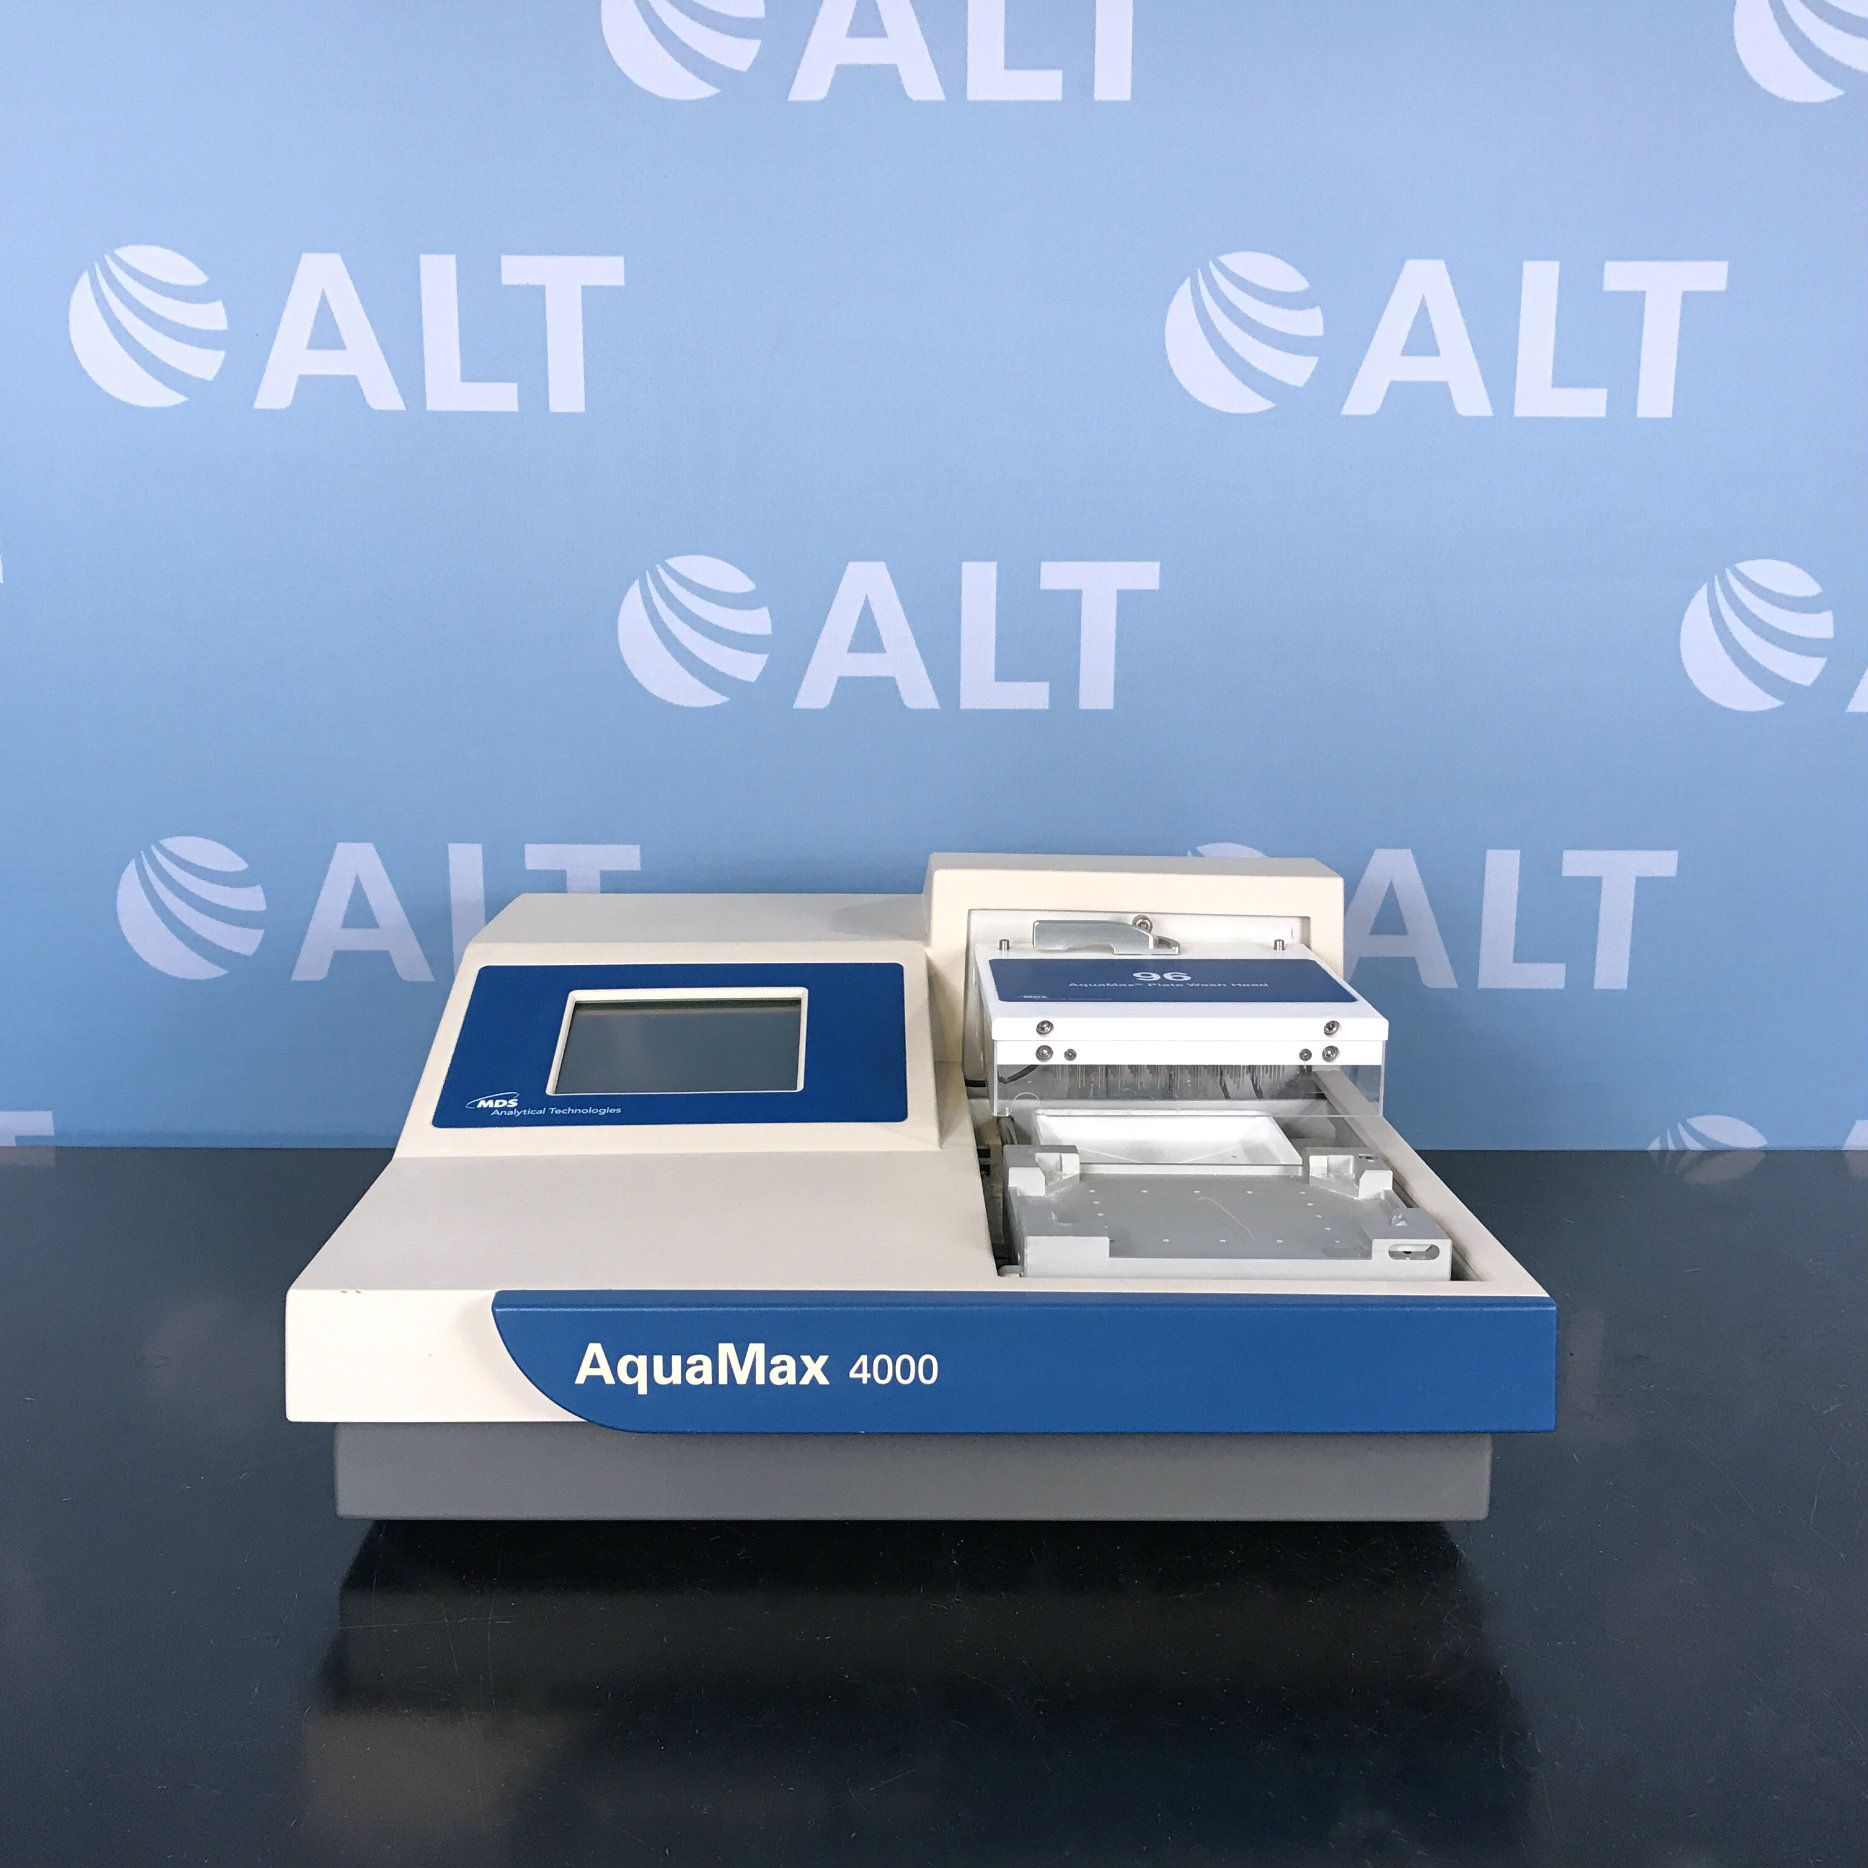 MDS Analytical Technologies AquaMax 4000 Microplate Washer with 96 Well